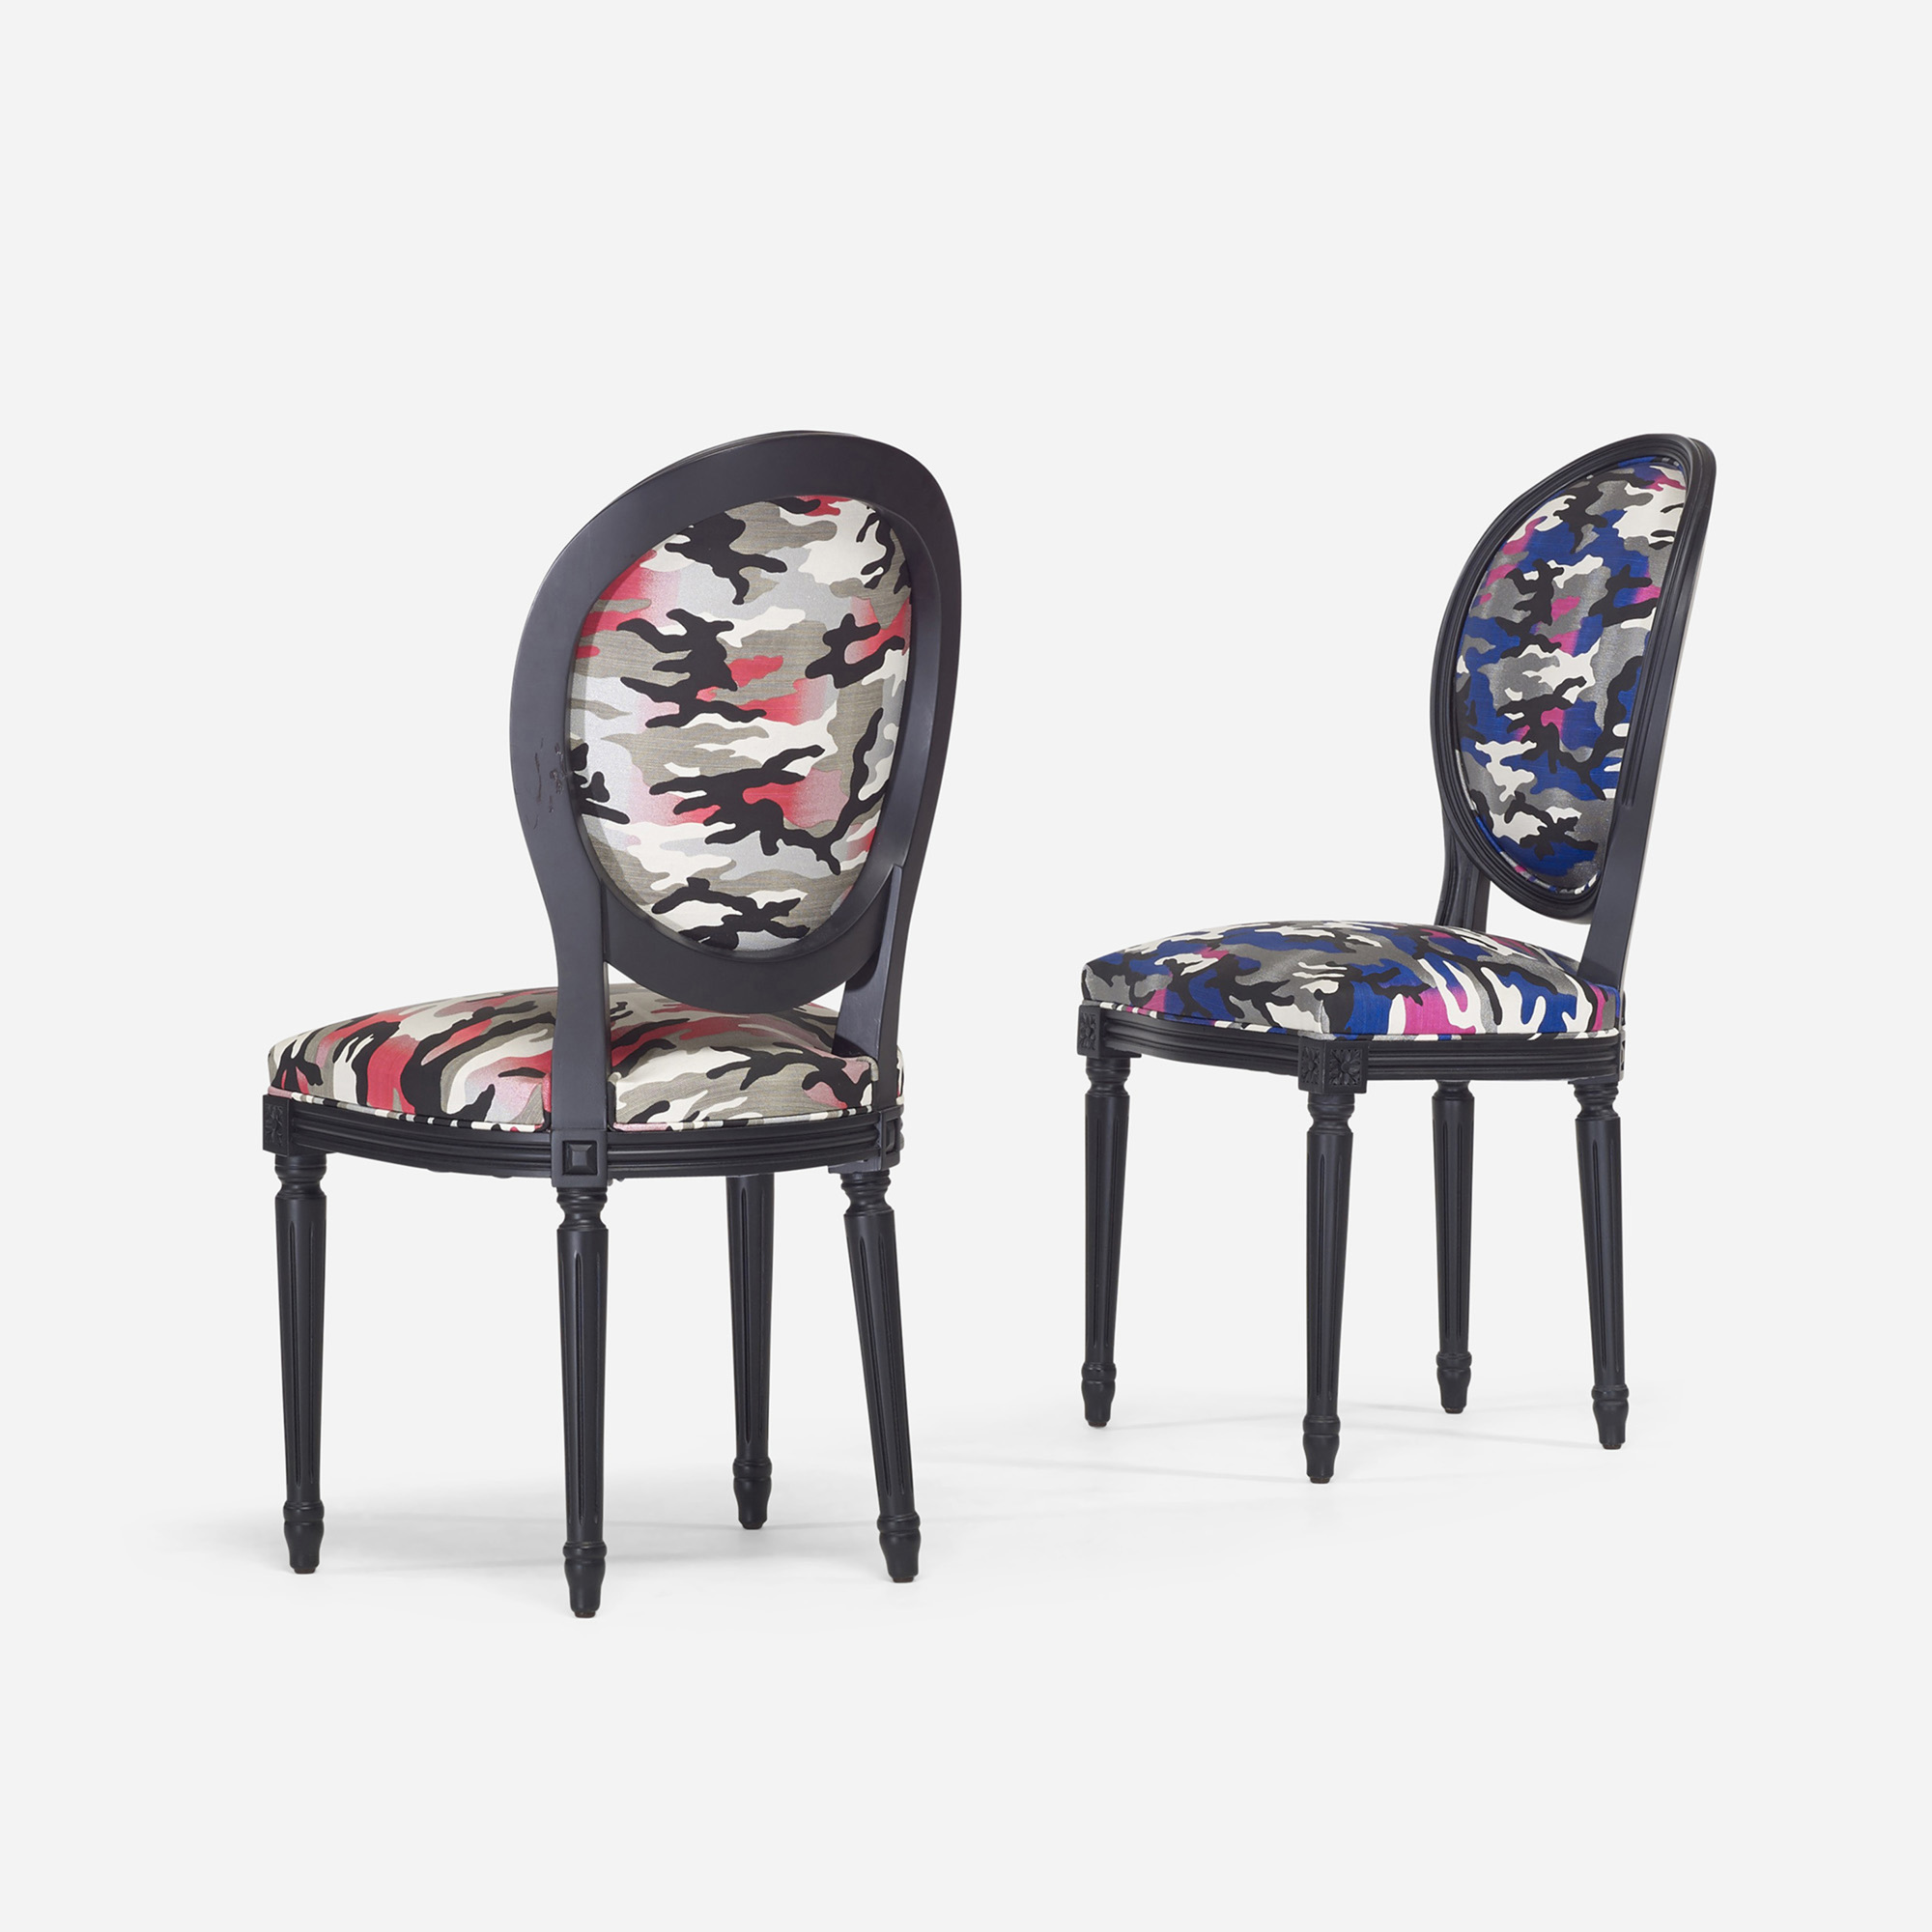 266: Anselm Reyle for Dior / custom Louis XVI chairs, pair (2 of 3)